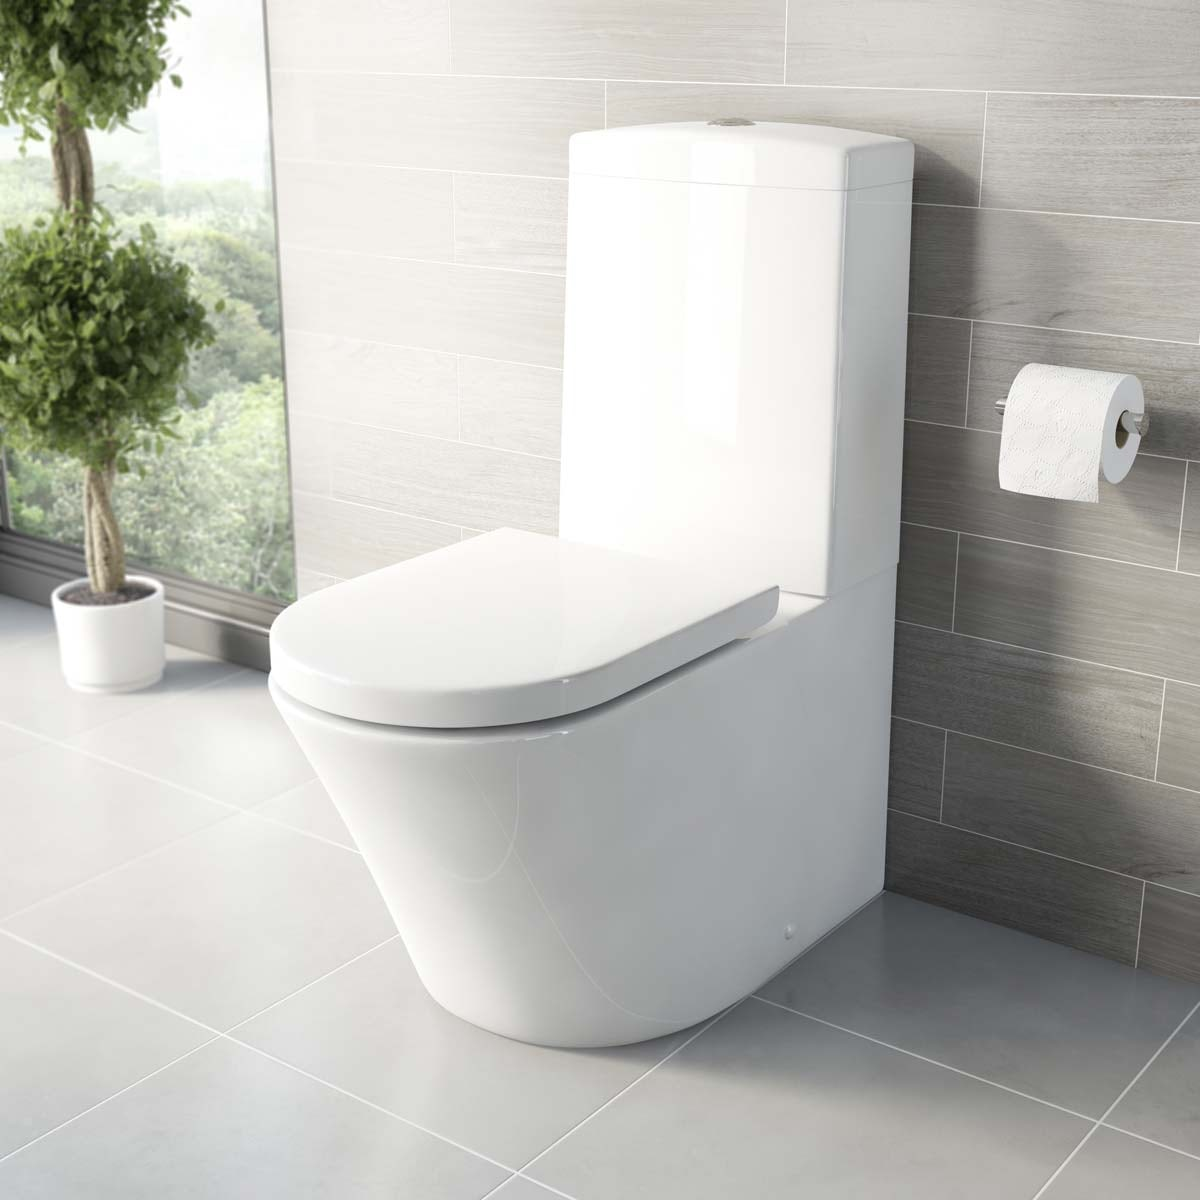 Arte close coupled toilet with luxury soft close toilet seat